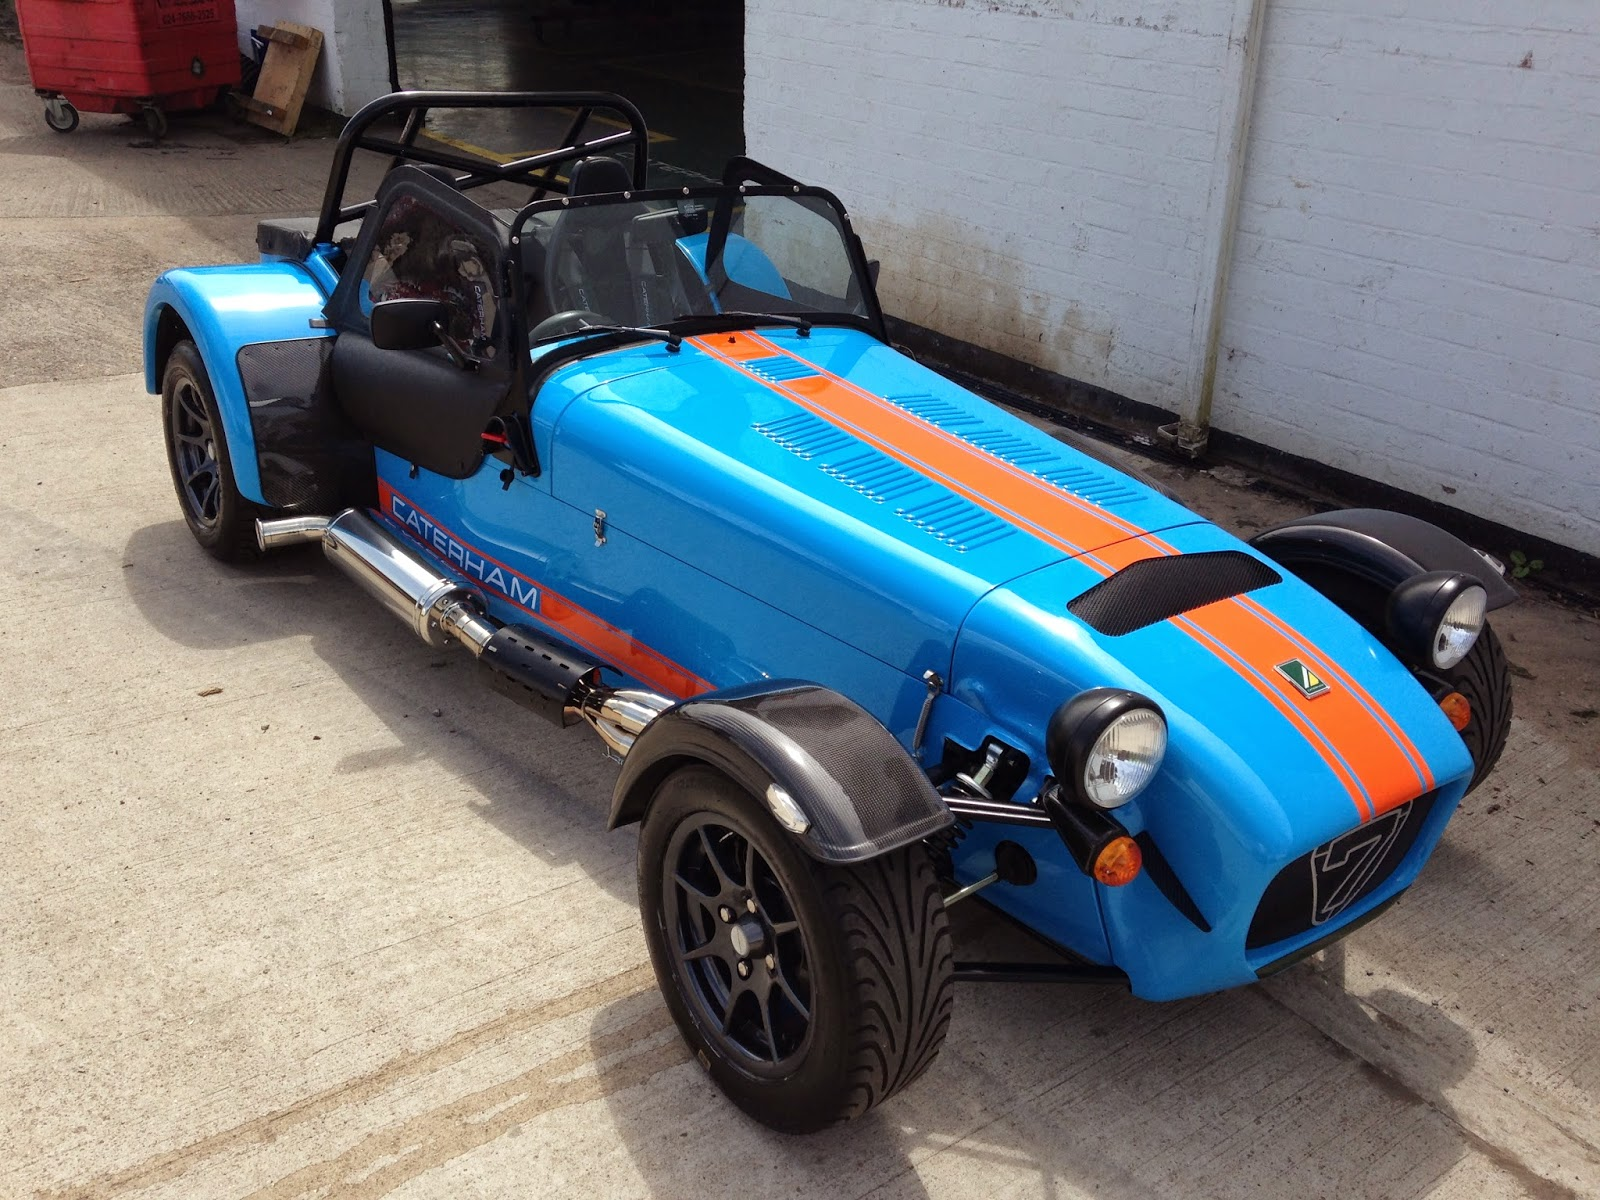 My Caterham R500 front view